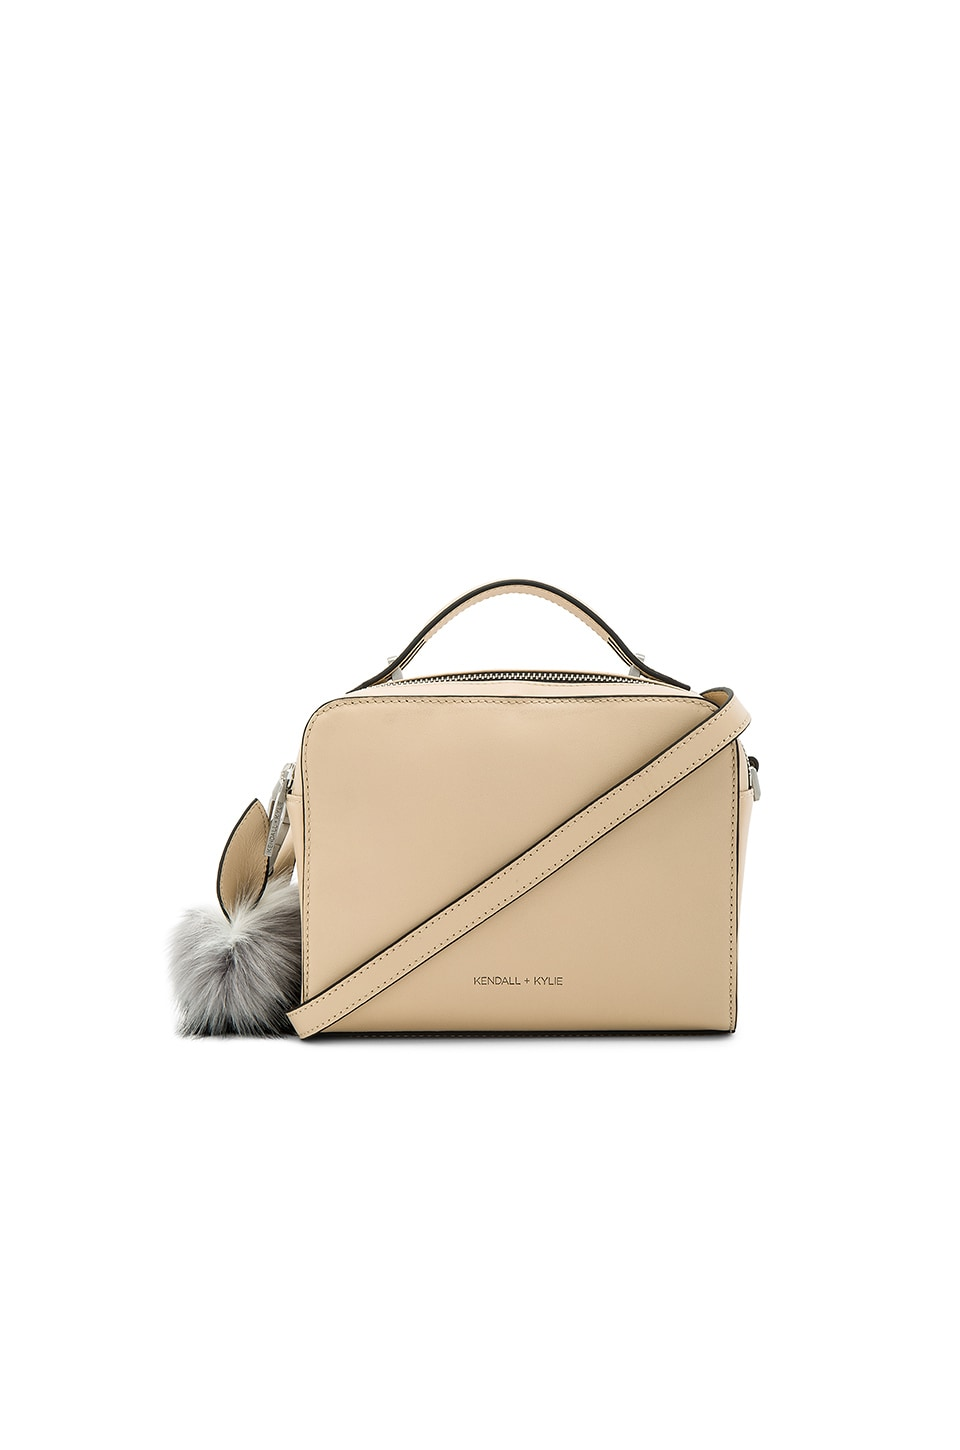 KENDALL + KYLIE Lucy Crossbody in Cream Tan